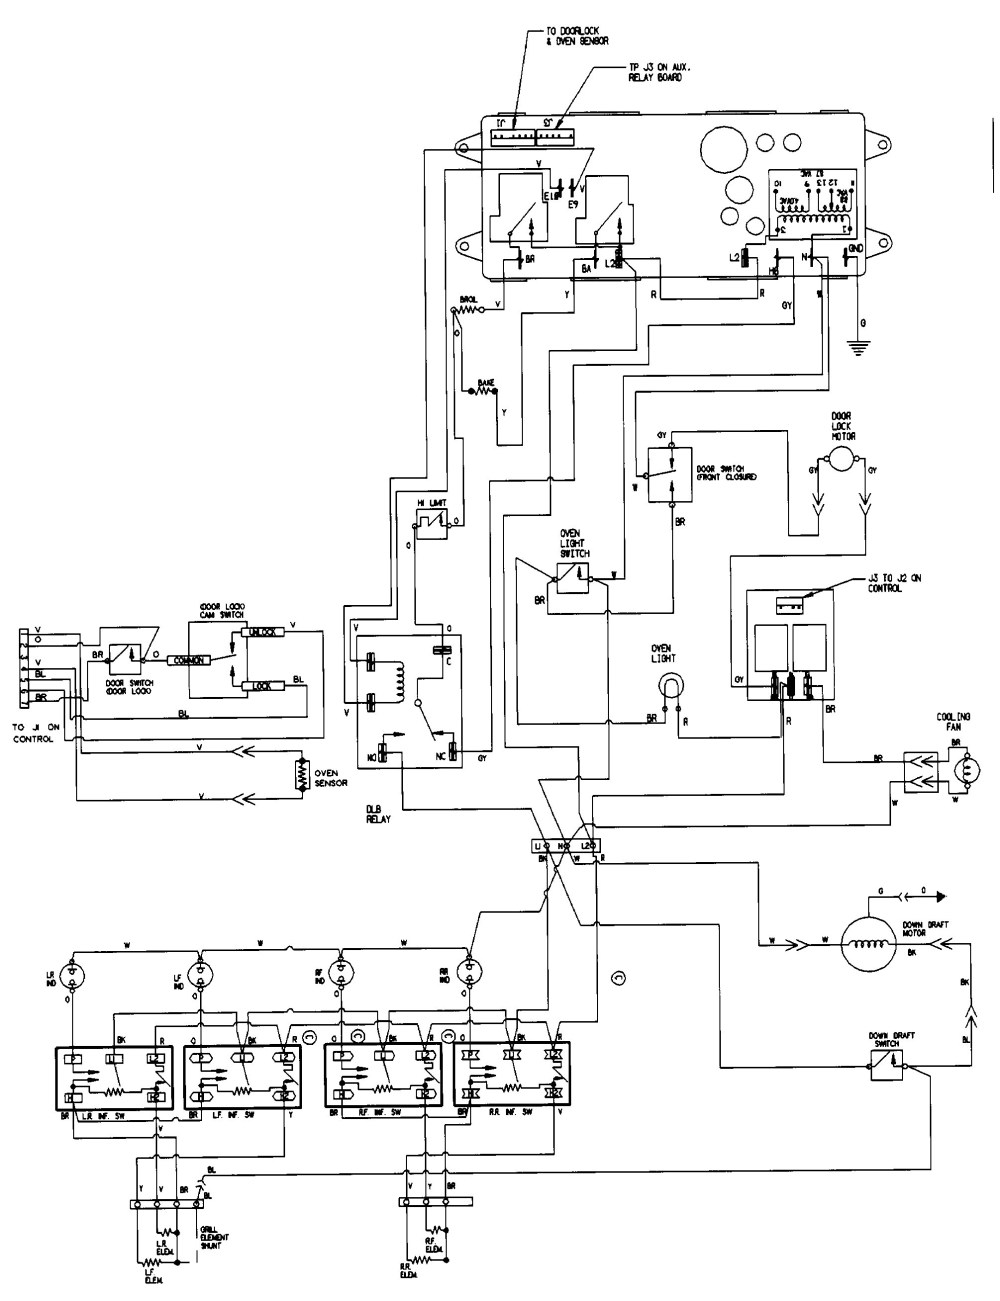 medium resolution of fuse diagram for a 1992 pontiac grand am moreover 1928 pontiac sedan fuse box diagram further 2005 pontiac grand am 3400 motor diagram